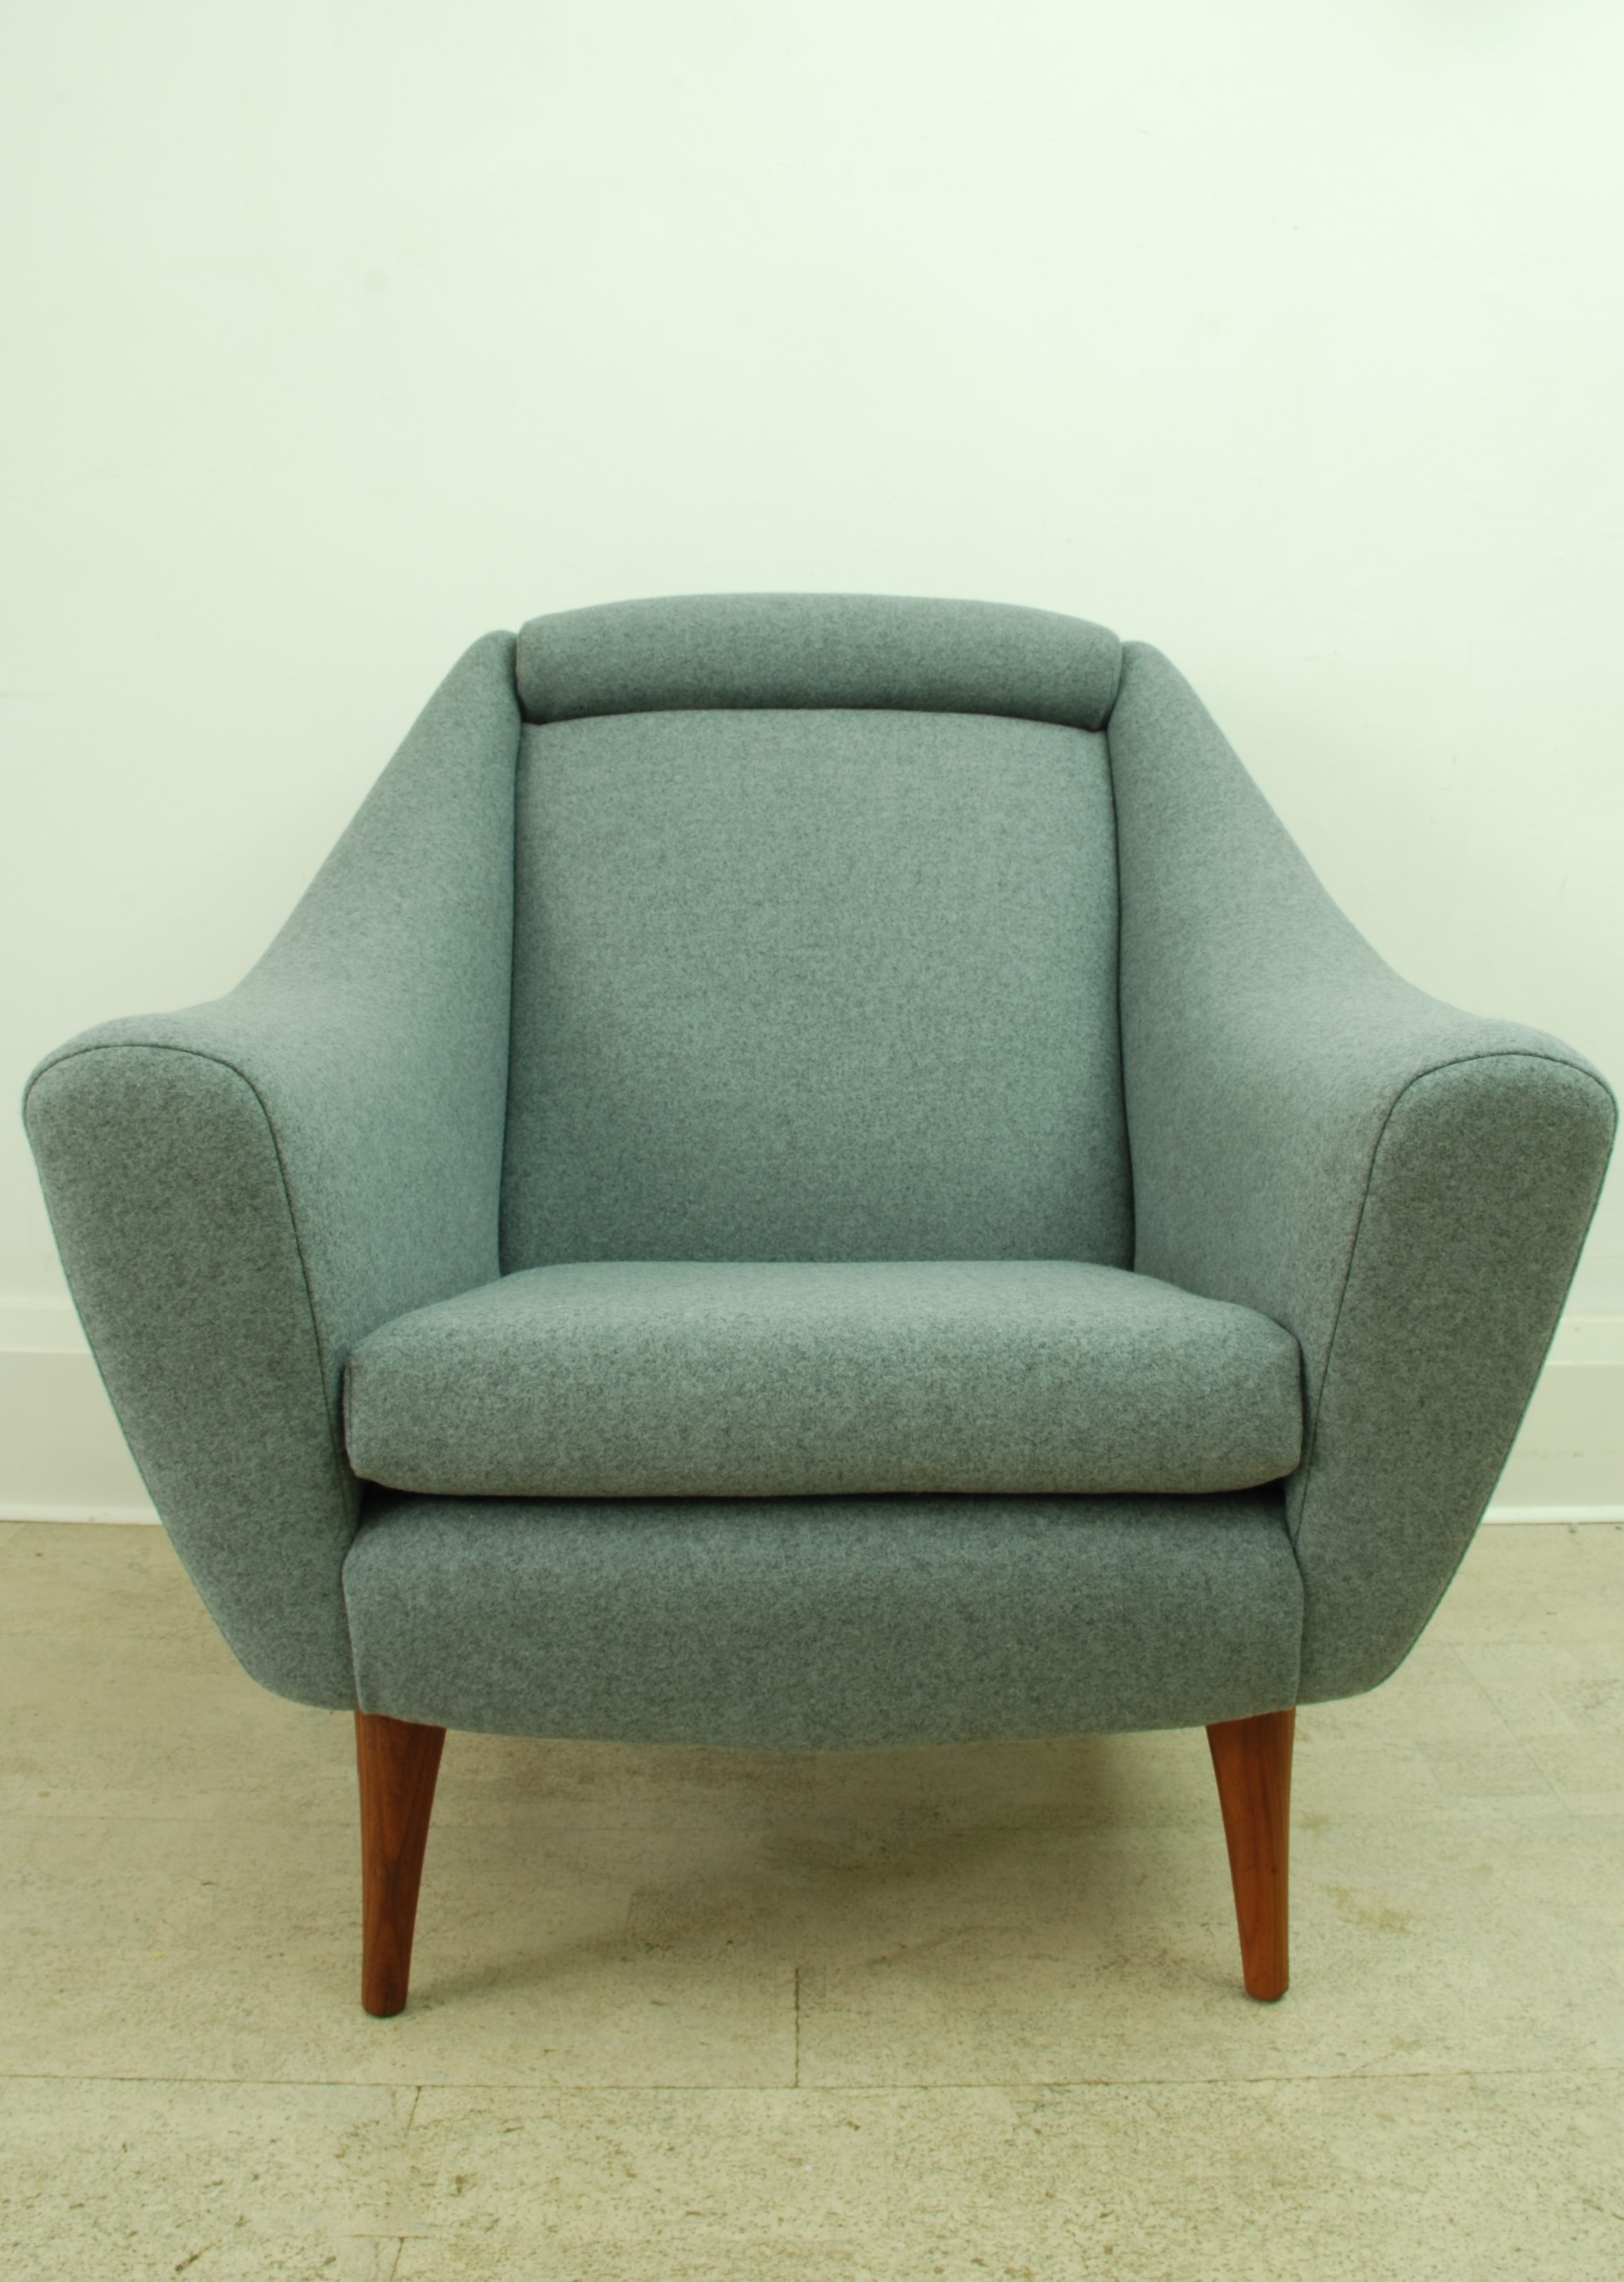 GREAVES & THOMAS ARMCHAIR